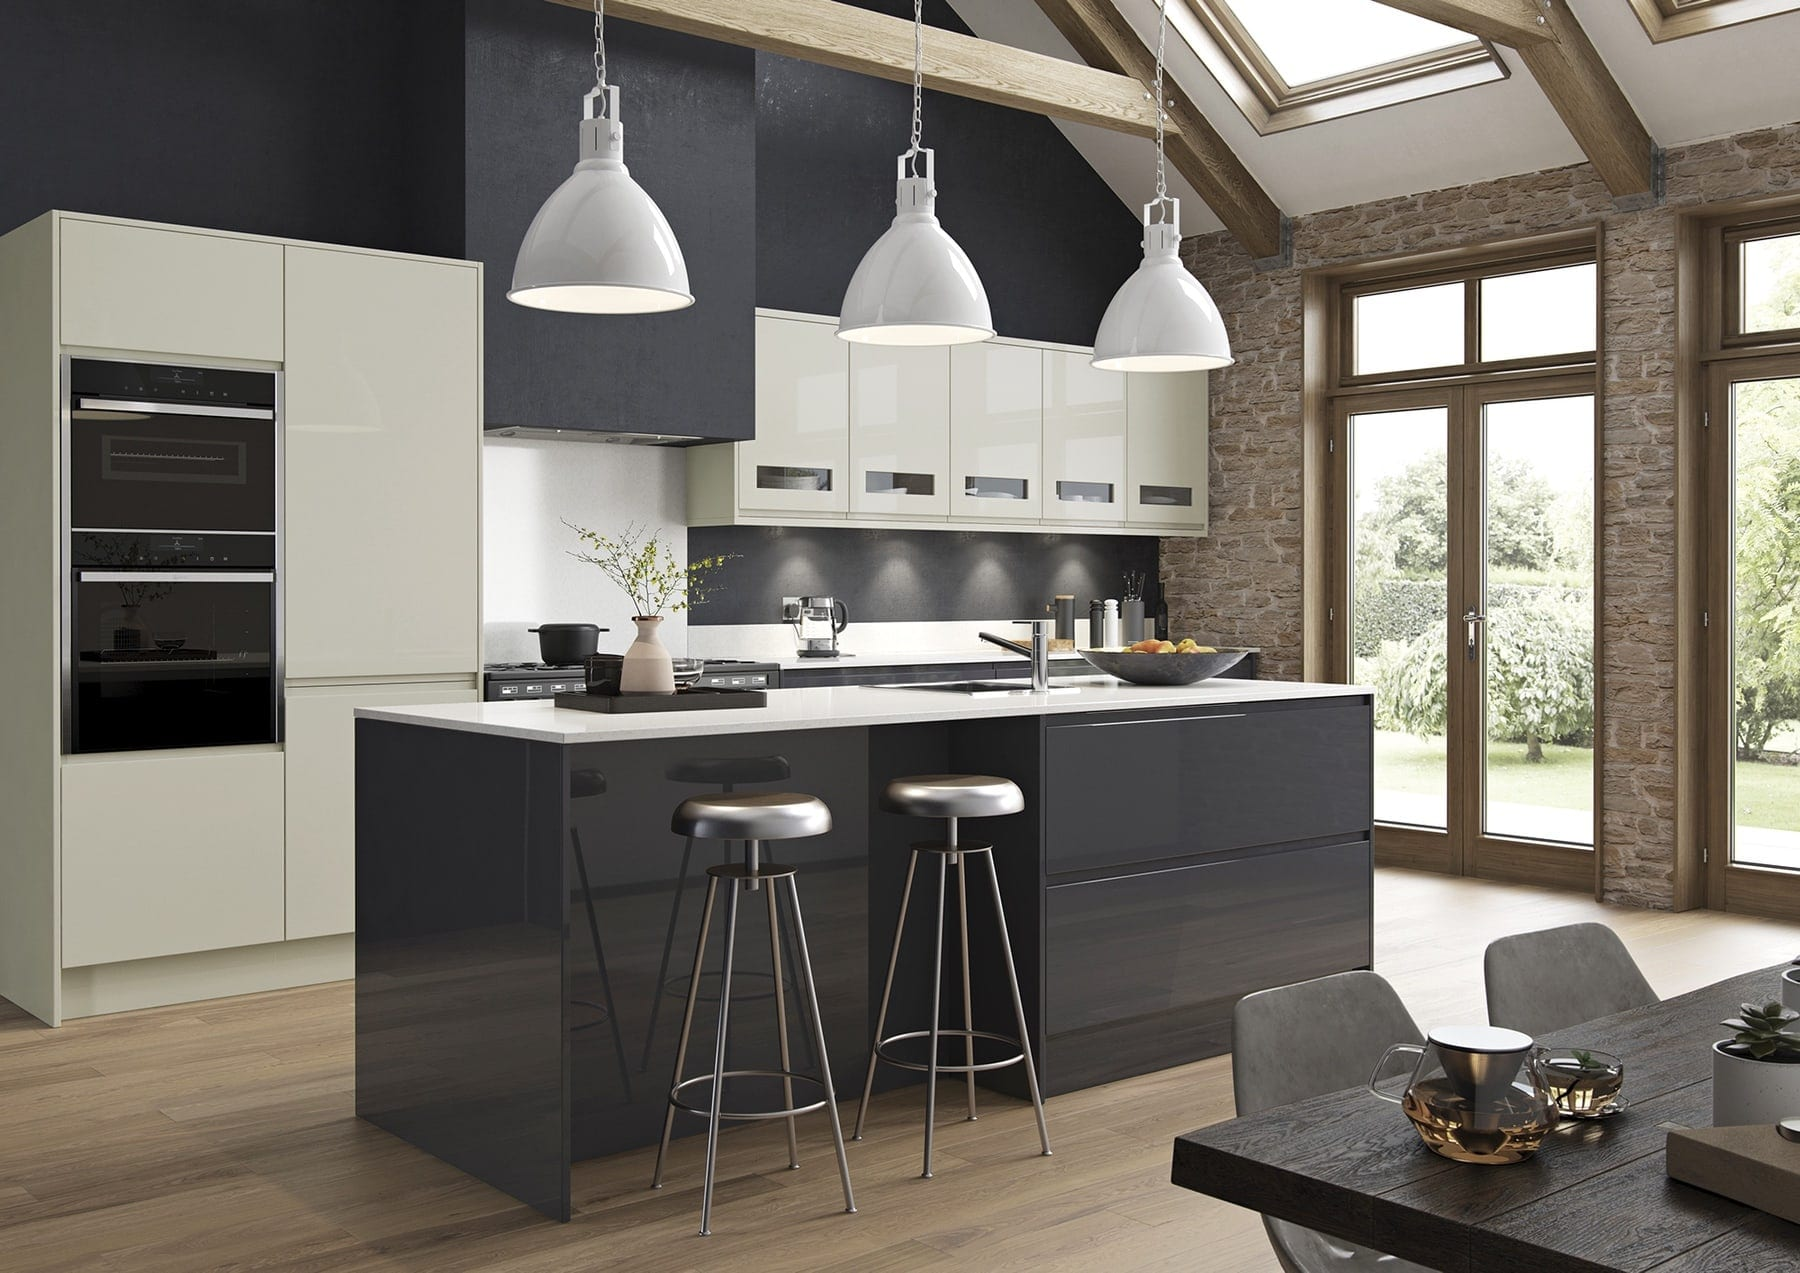 Strada Gloss Graphite And Porcelain Kitchen With Island | Colour House Interiors, Caterham